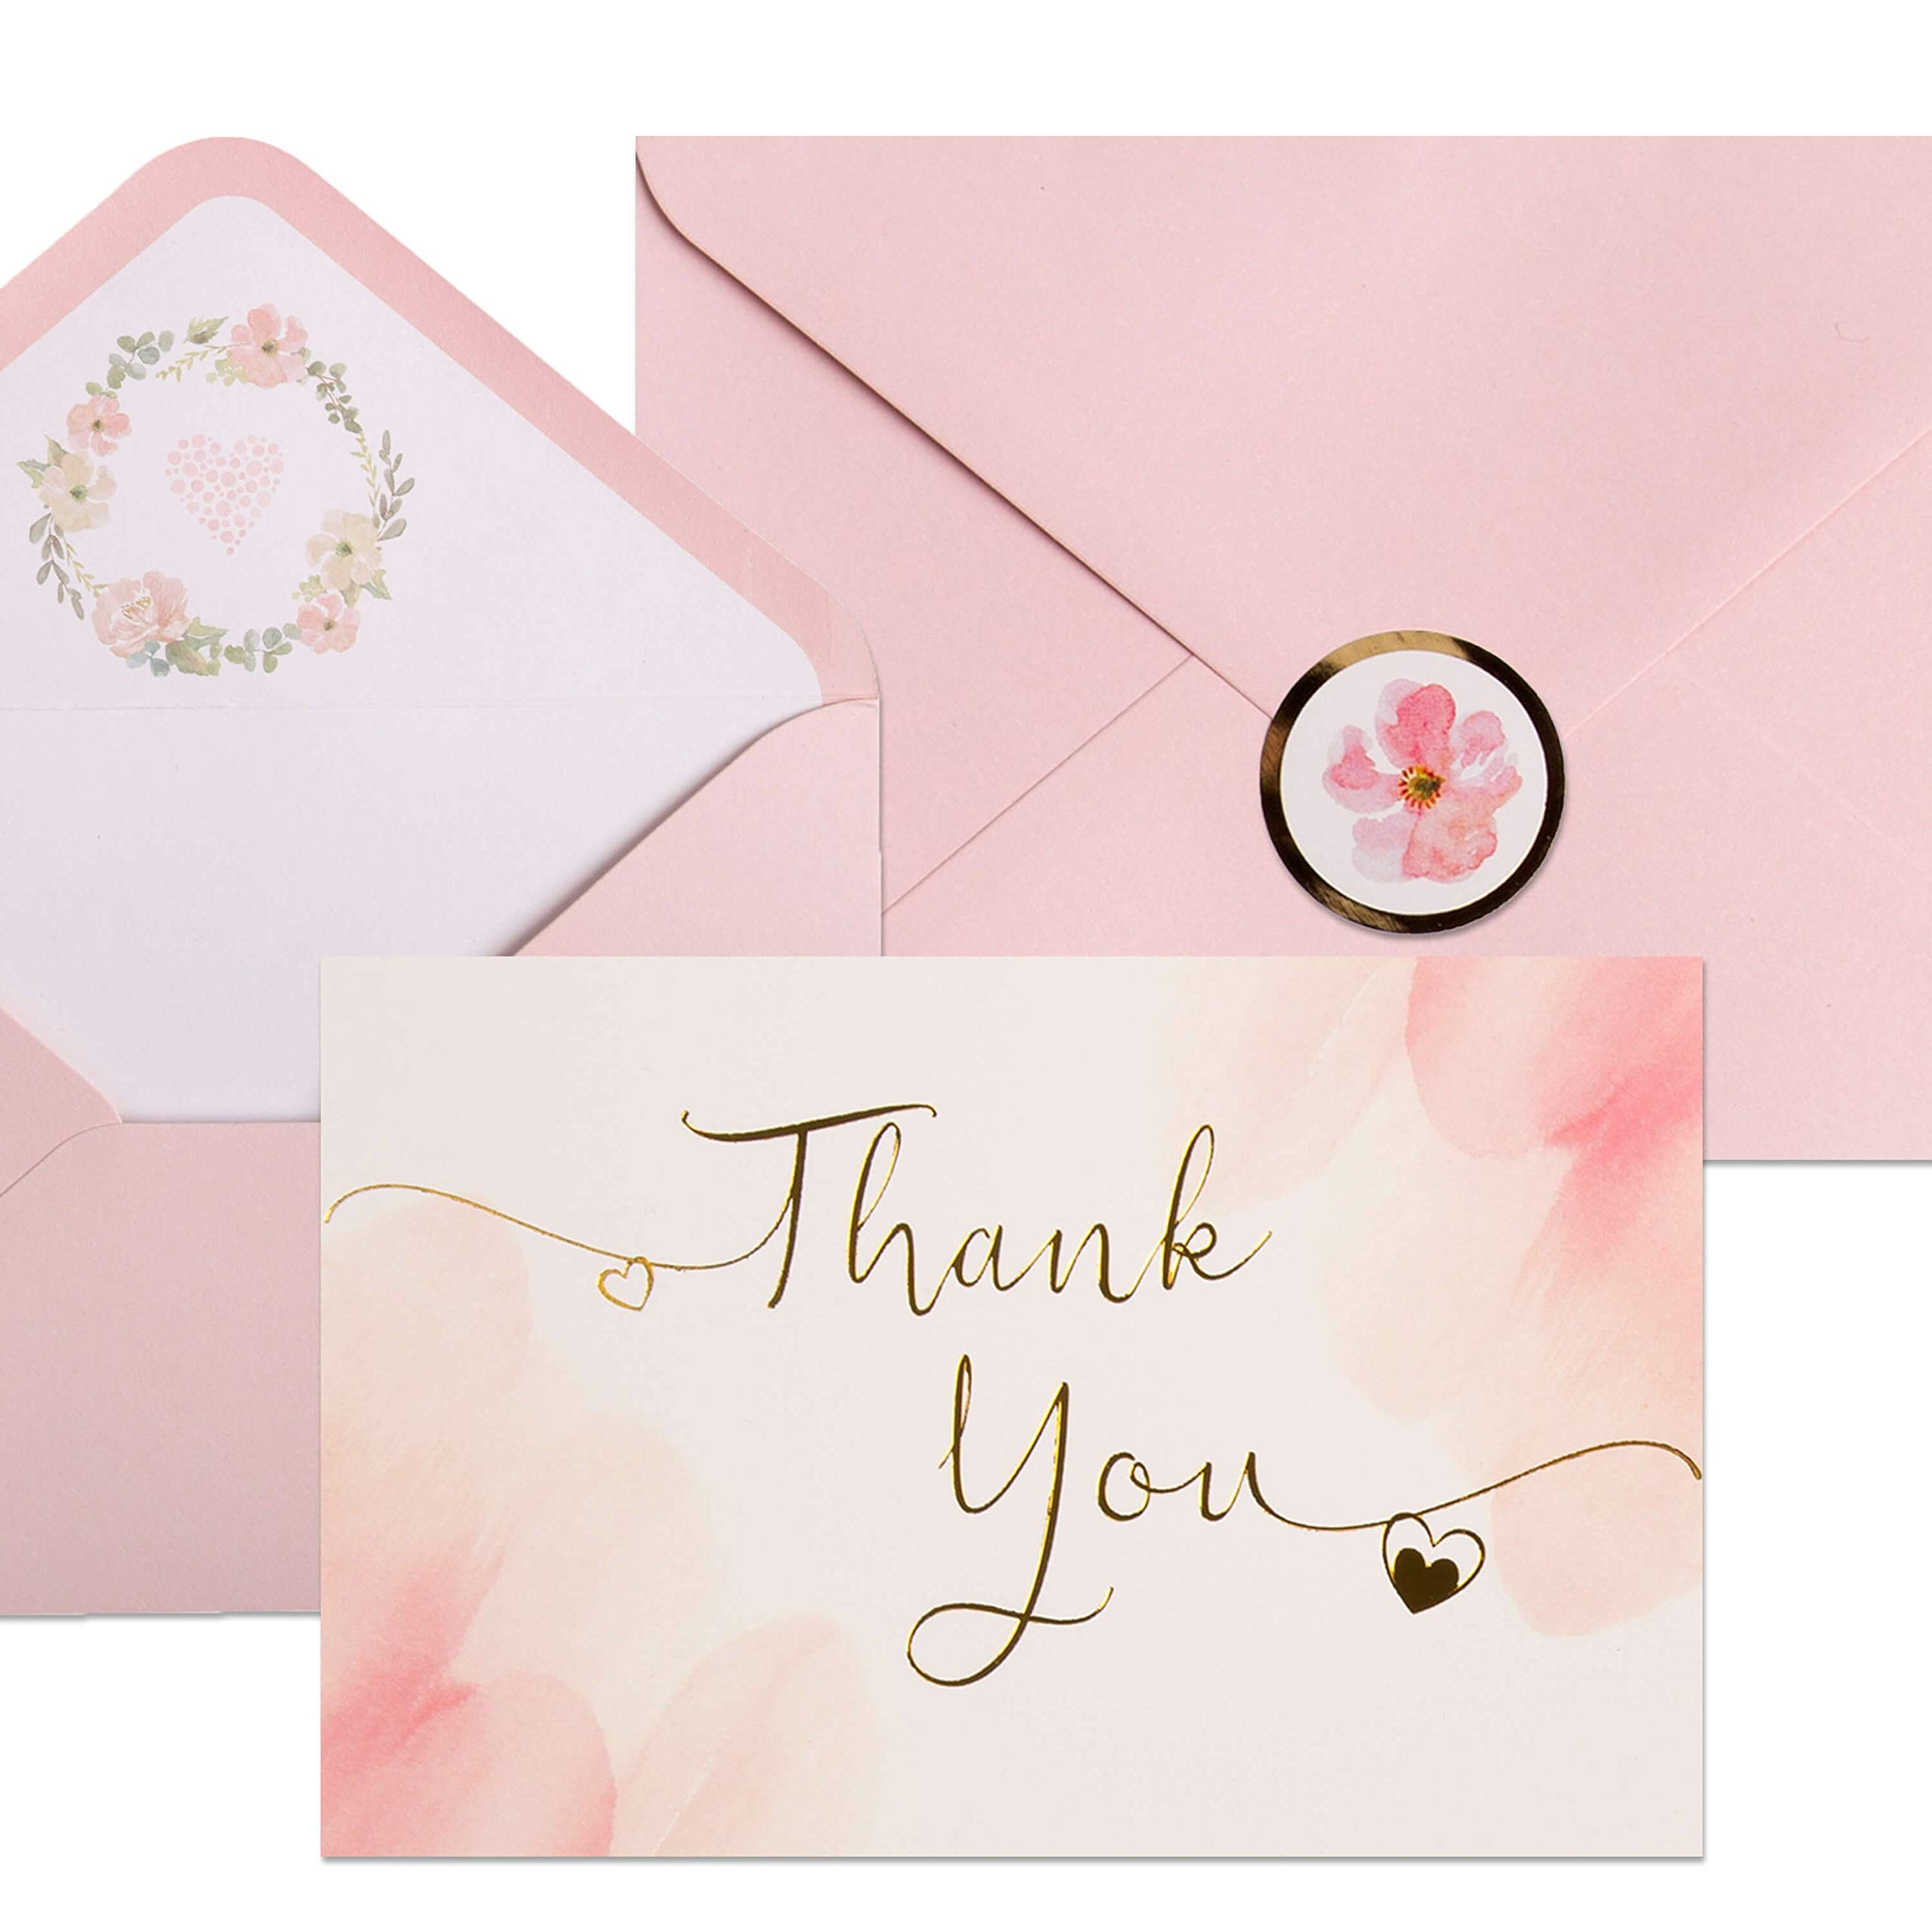 40 Blush Thank You Cards   Watercolor Pink and Gold Foil Thank You Notes Perfect for Girl's Baby Shower, Wedding & Bridal Showers   Blush Envelopes & Floral Foil Stickers Included.